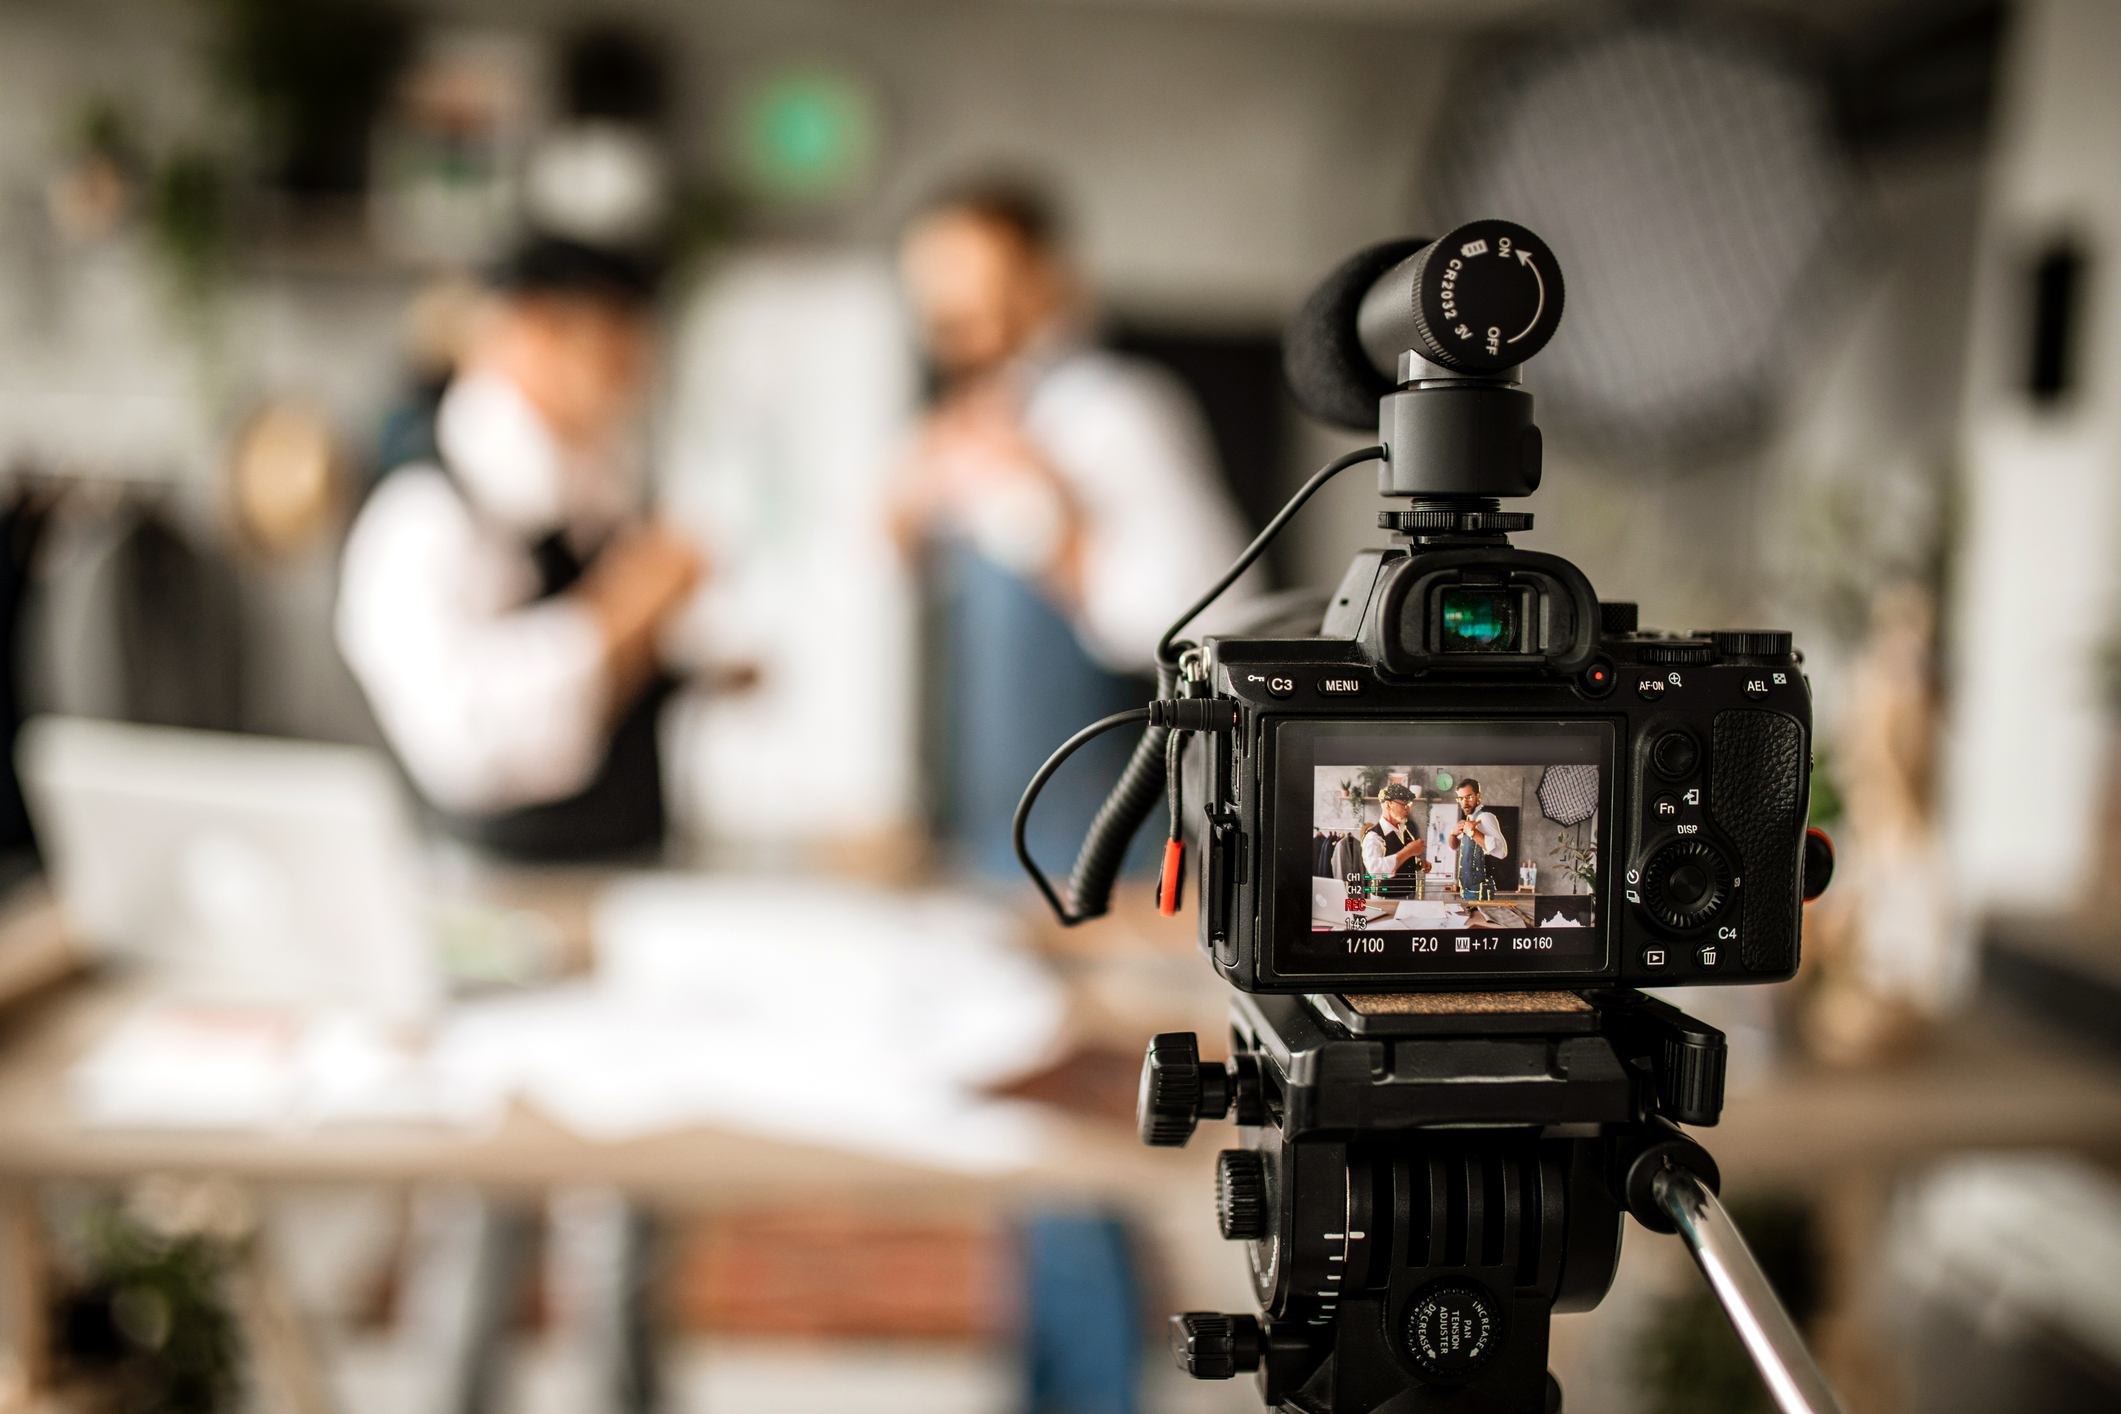 Manufacturing Video Production: 7 Camera Settings You Should Know